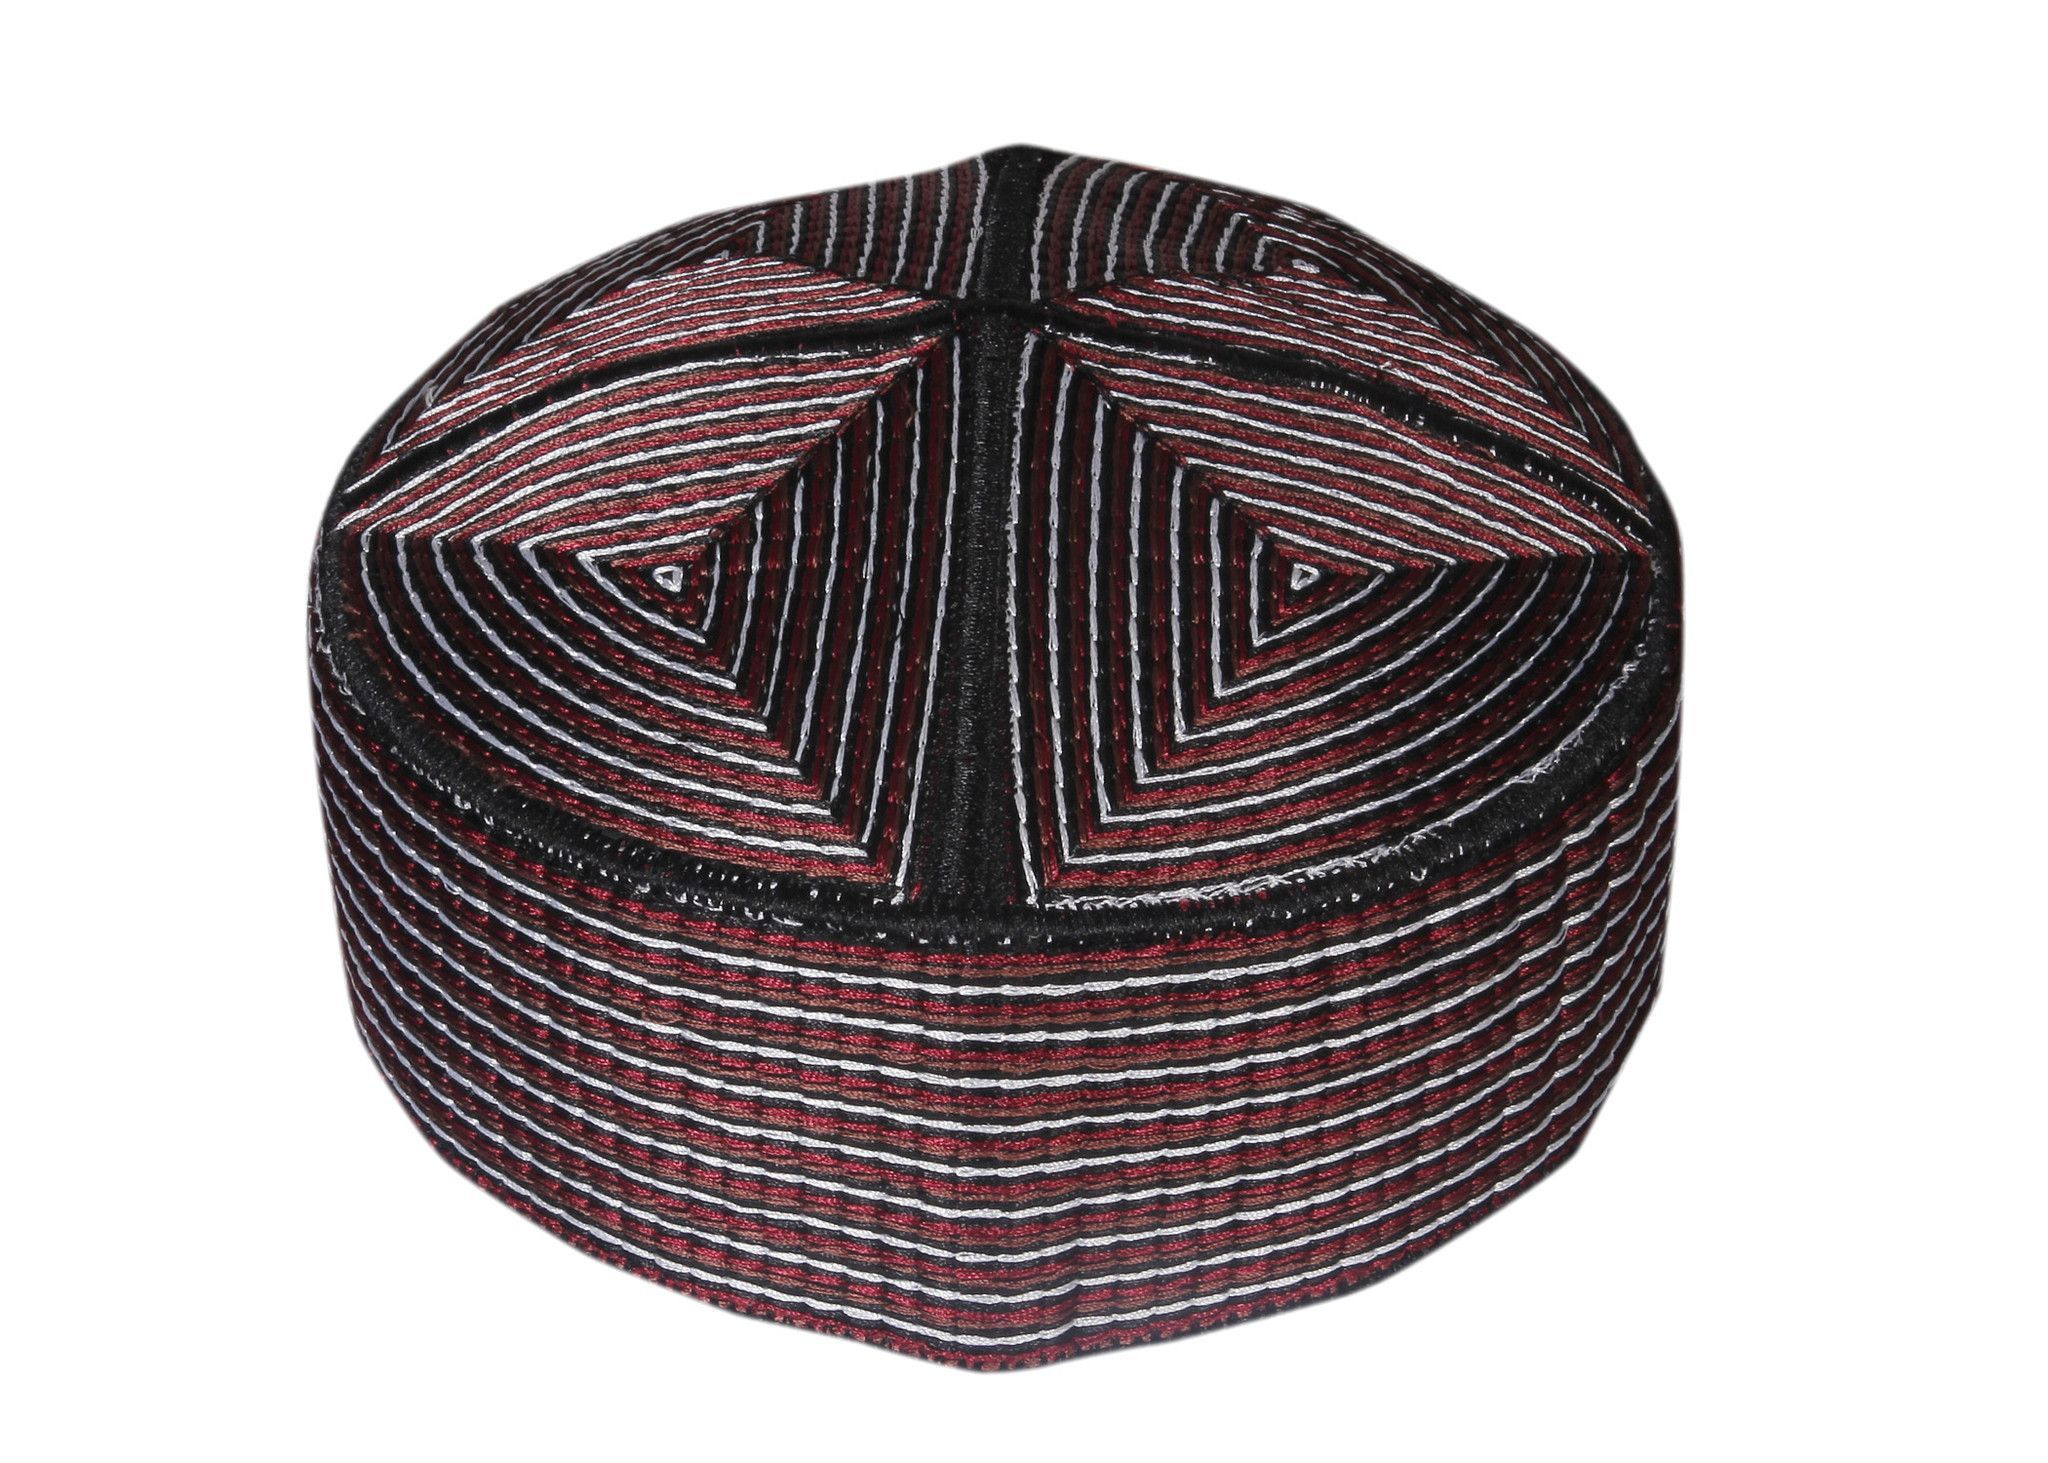 11 best chchia kufi images on pinterest africans mens muslim prayer cap of balochi design with maroon threads bankloansurffo Choice Image